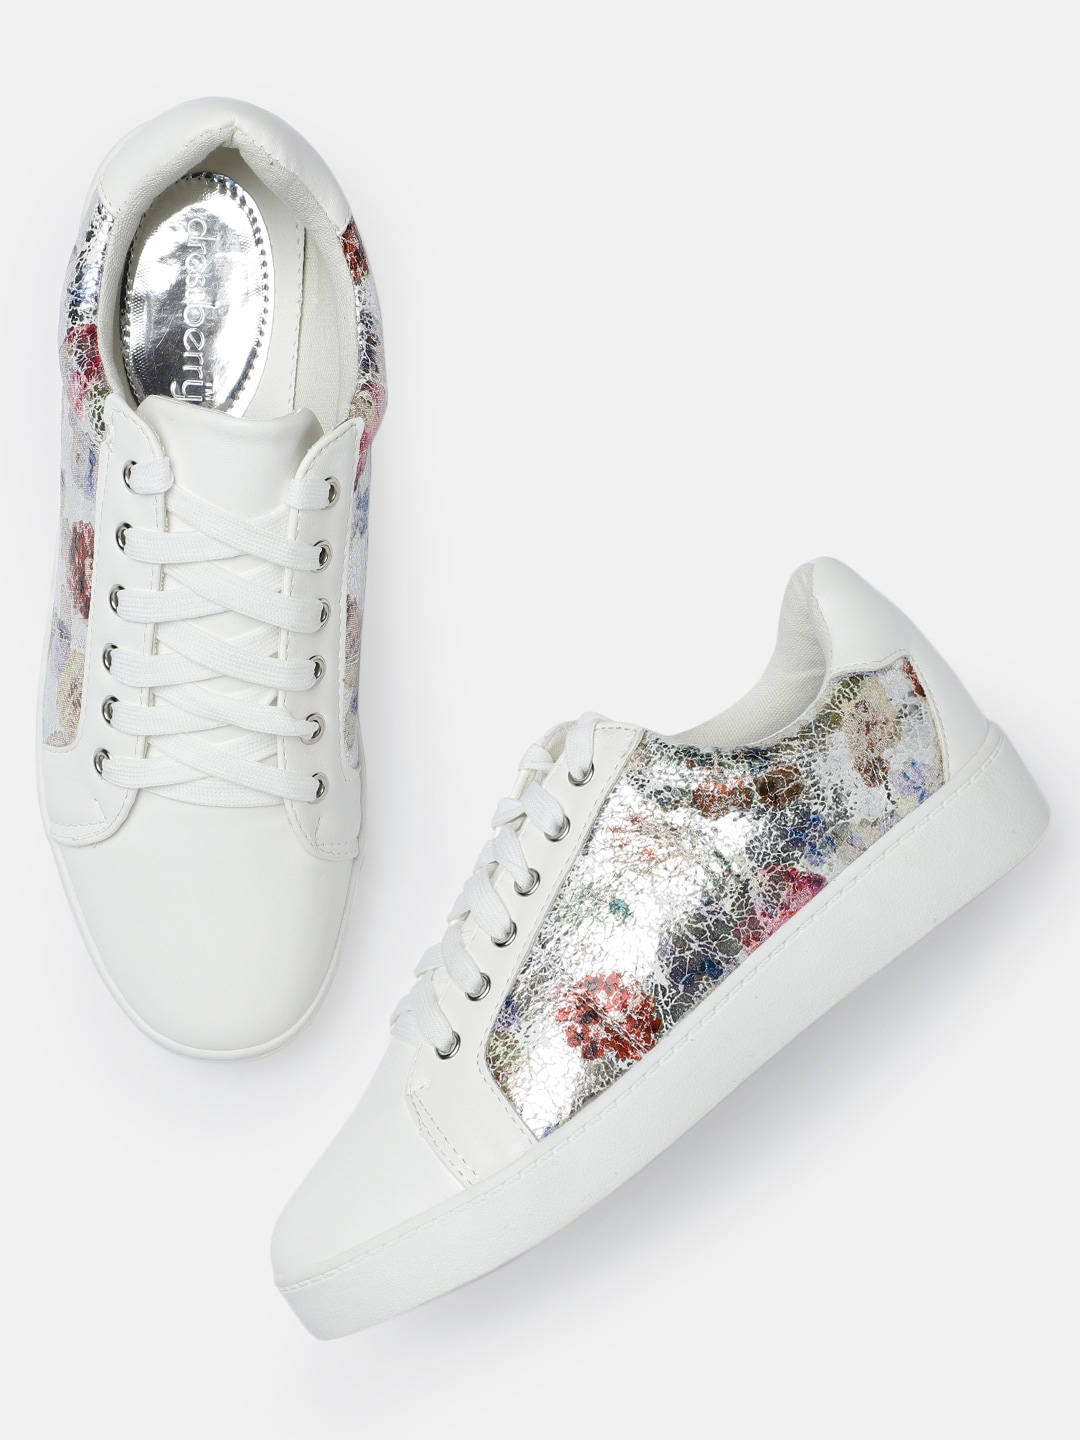 separation shoes 65902 c08e4 Printed White Casual Shoes - Buy Printed White Casual Shoes online in India